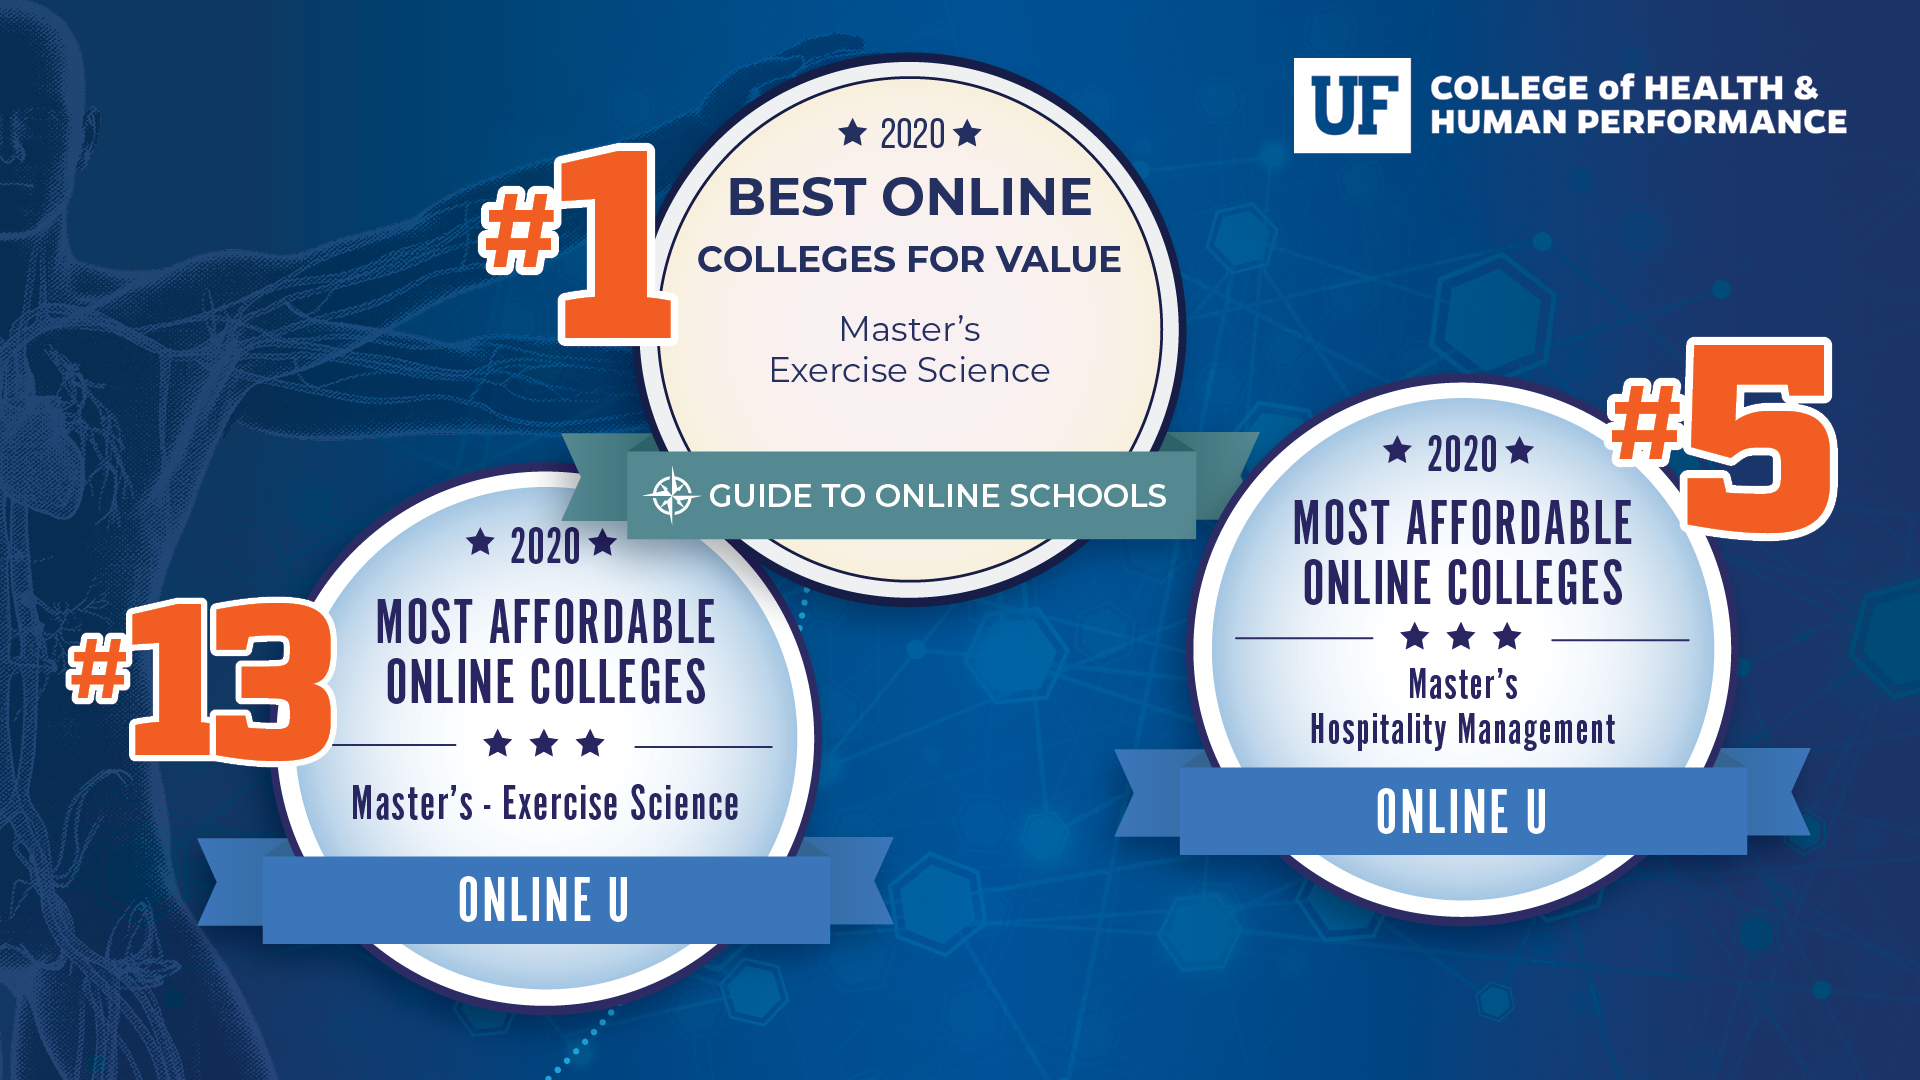 Online APK Master's Program Takes Top Ranking; Two Programs in Top 15 for Affordability